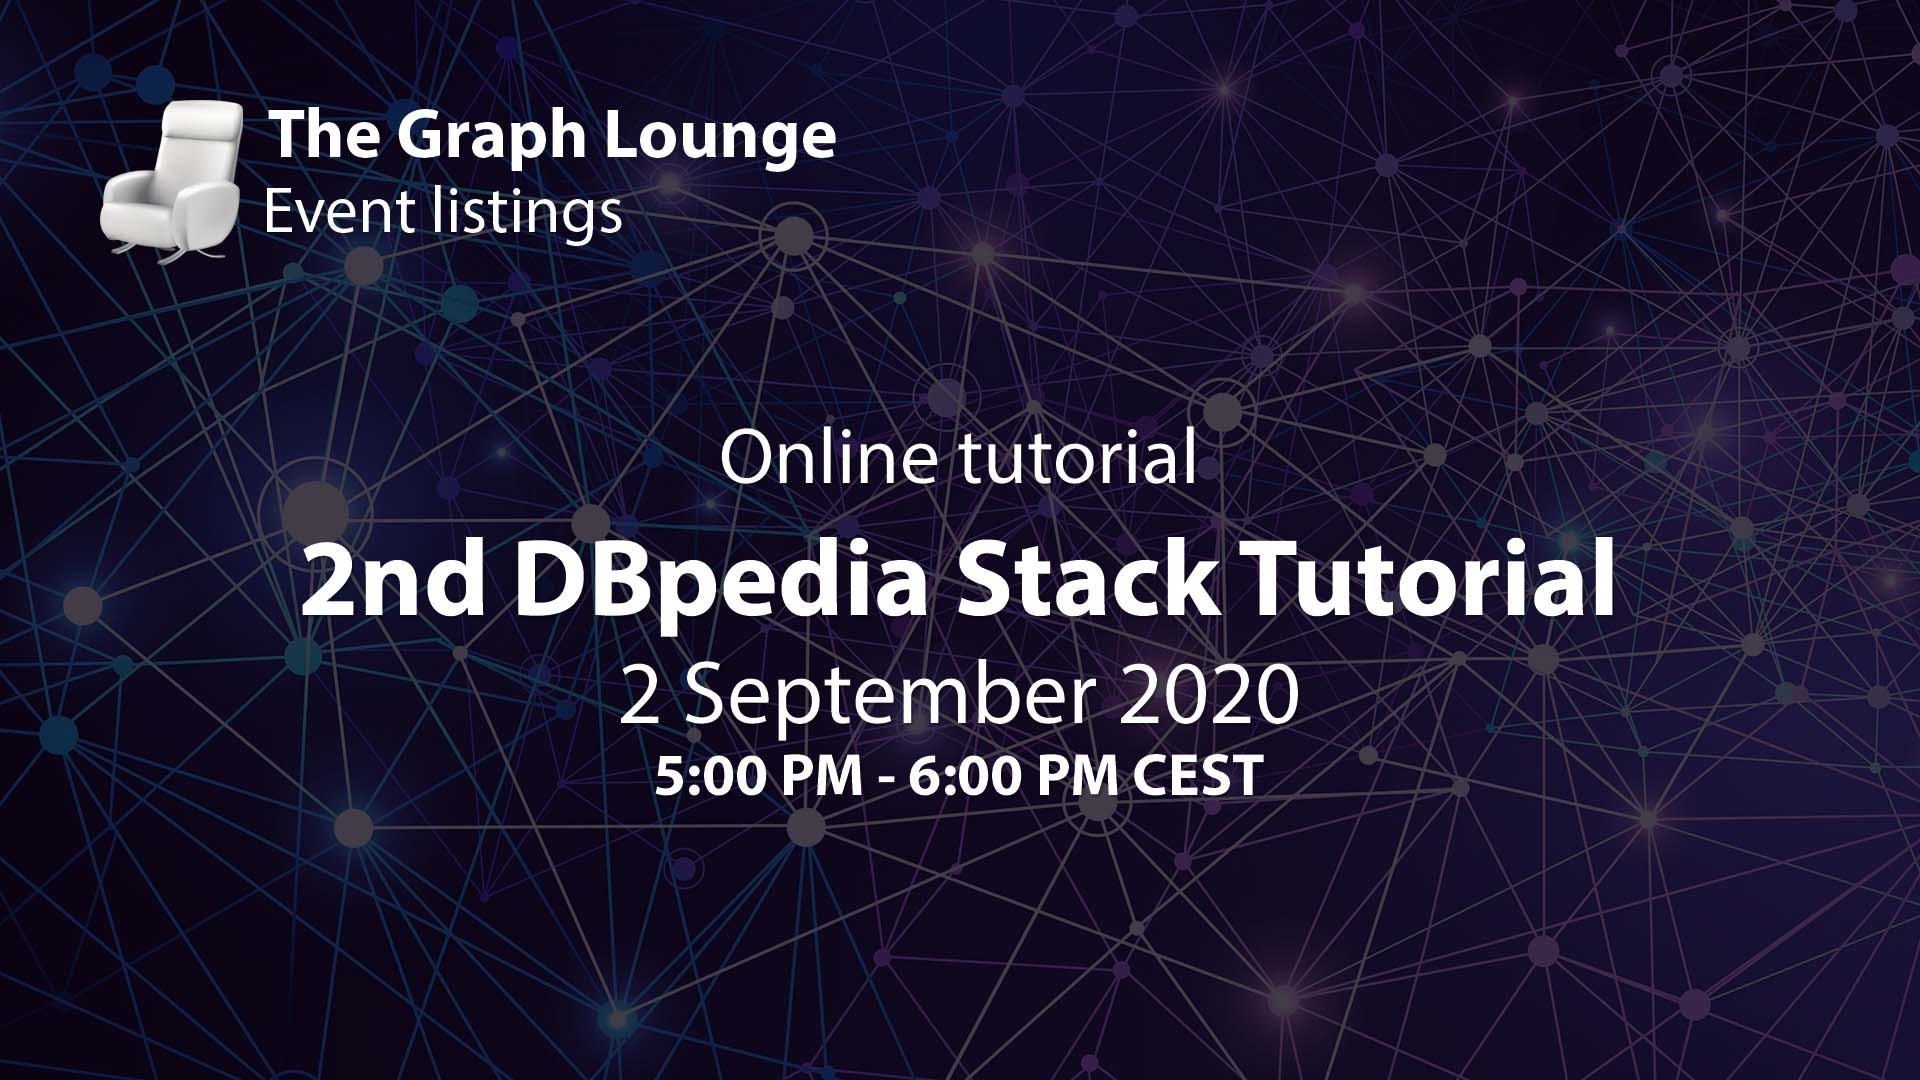 2nd DBpedia Stack Tutorial